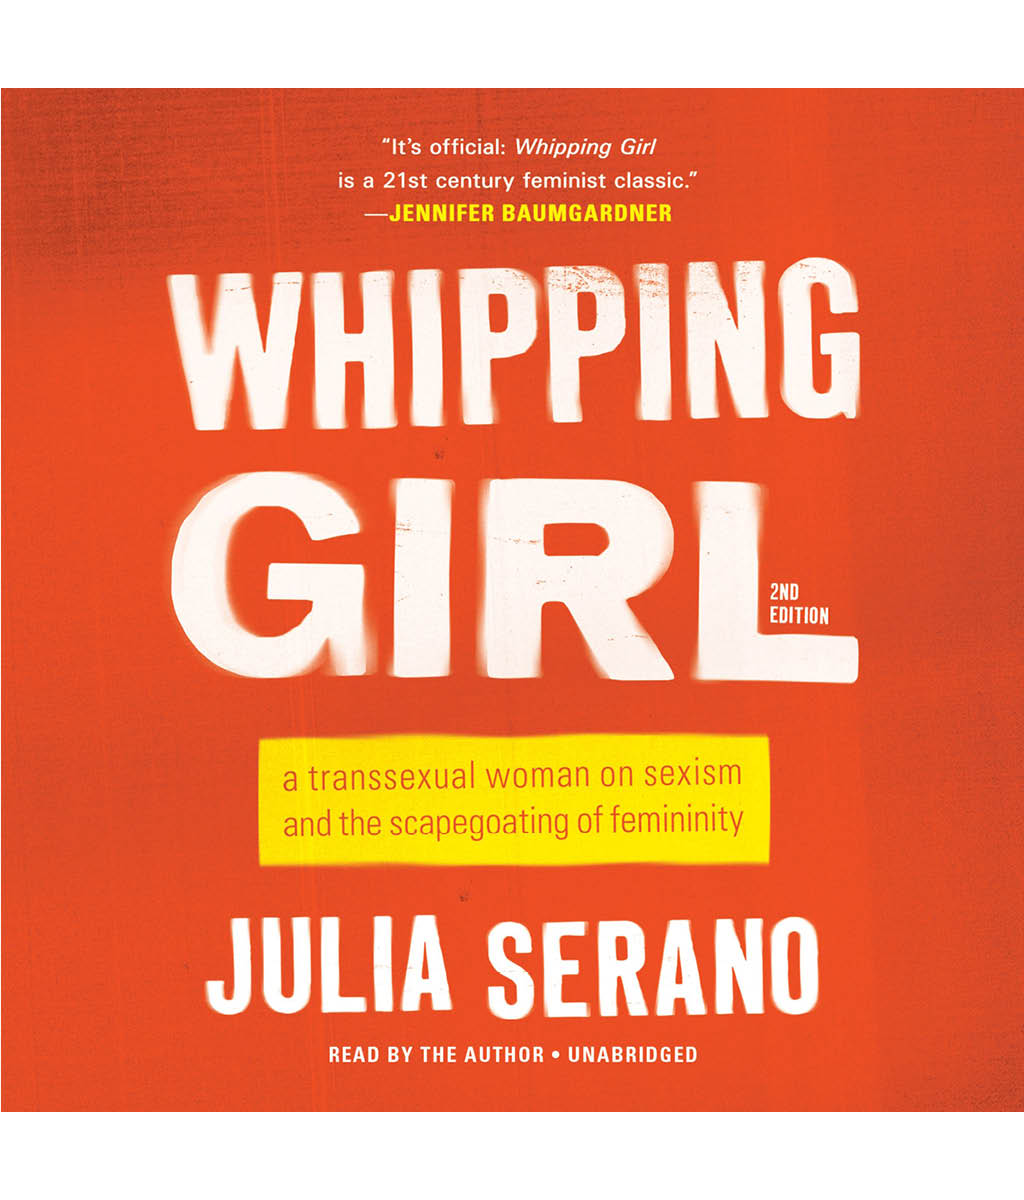 Whipping Girl: A transsexual woman on sexism and the scapegoating of femininity by Julia Serrano